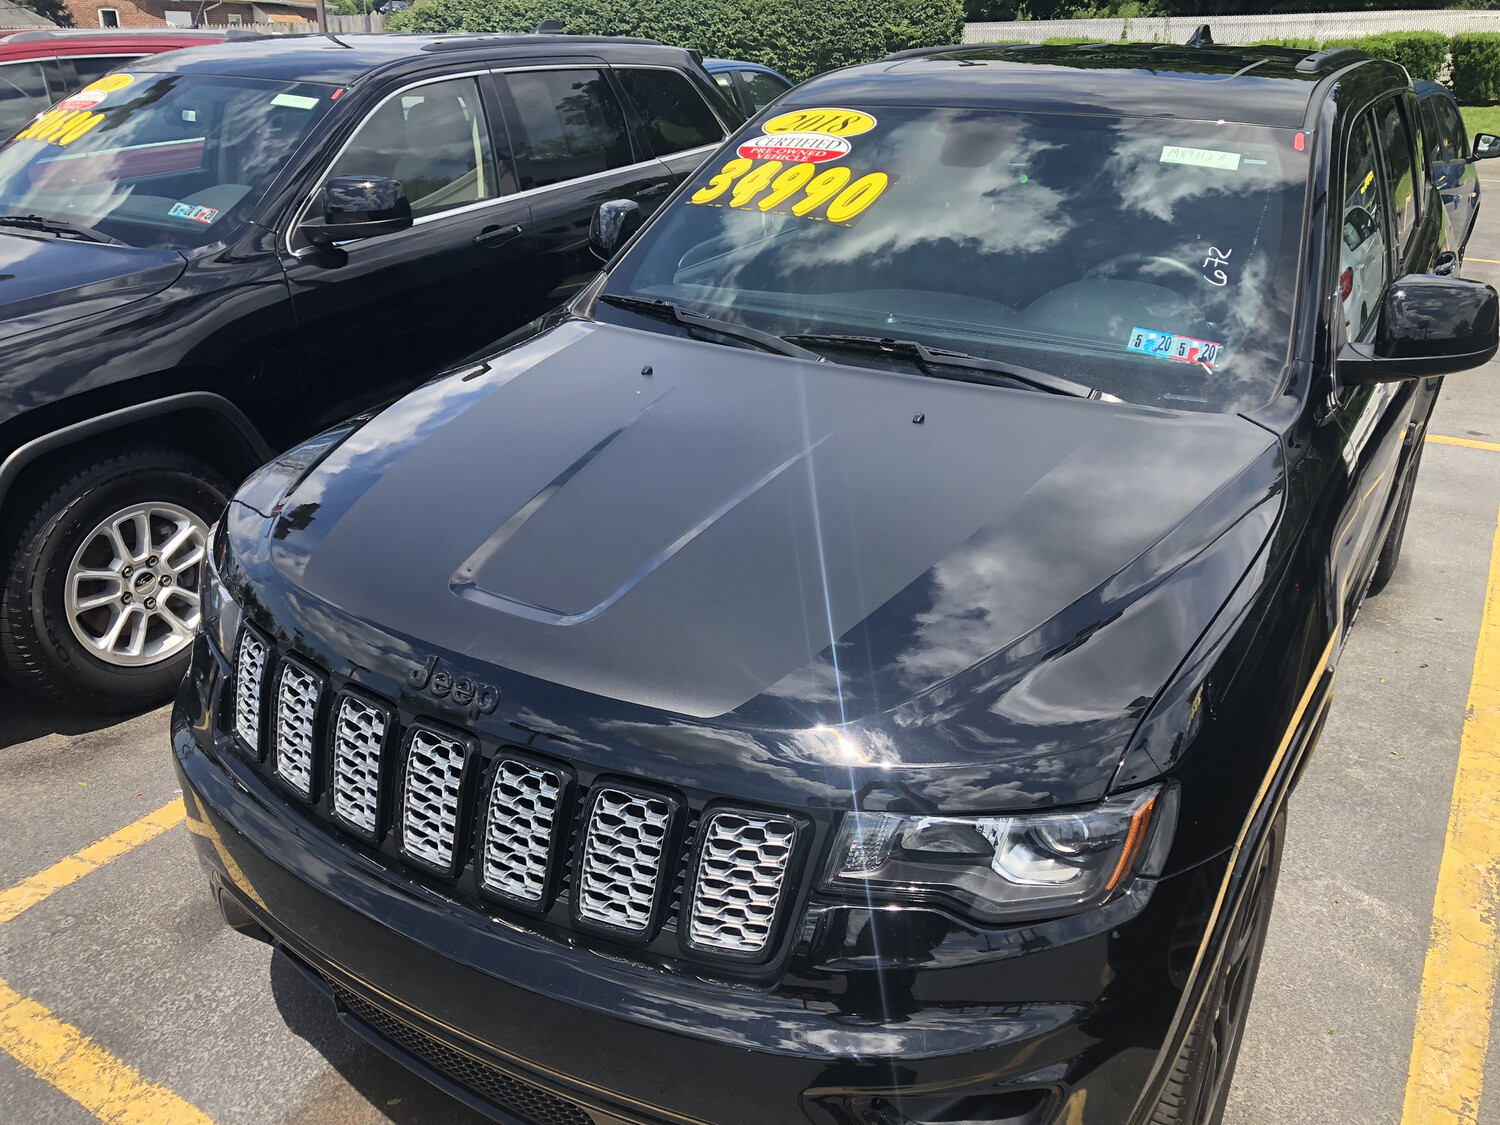 2011 - Up Jeep Grand Cherokee Trailhawk Style Hood Blackout Graphics